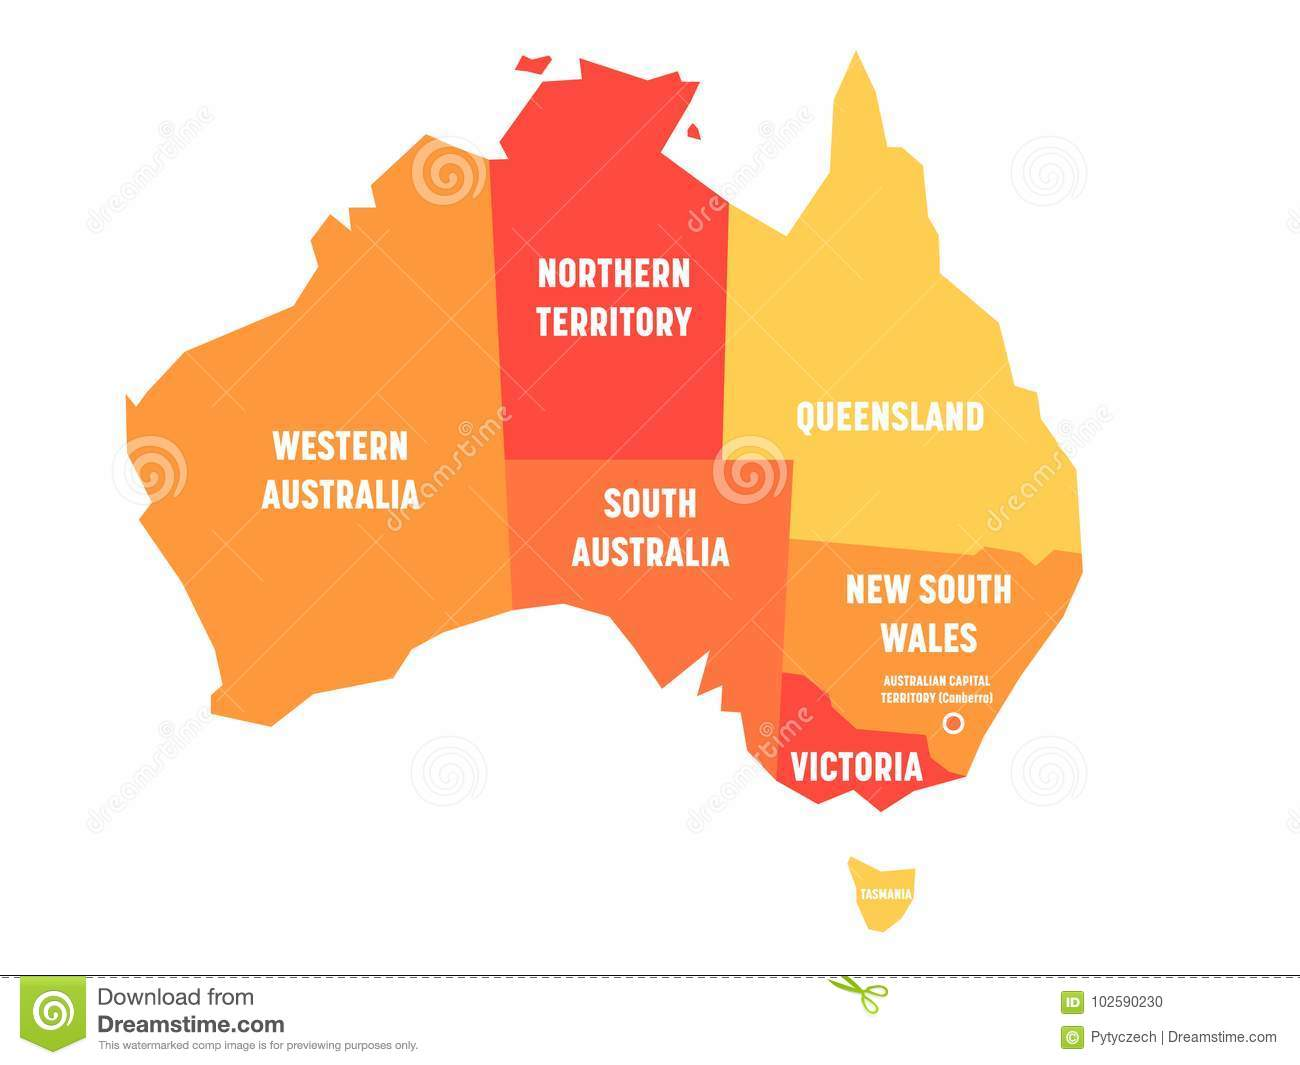 Australia Map Vector With States.Simplified Map Of Australia Divided Into States And Territories